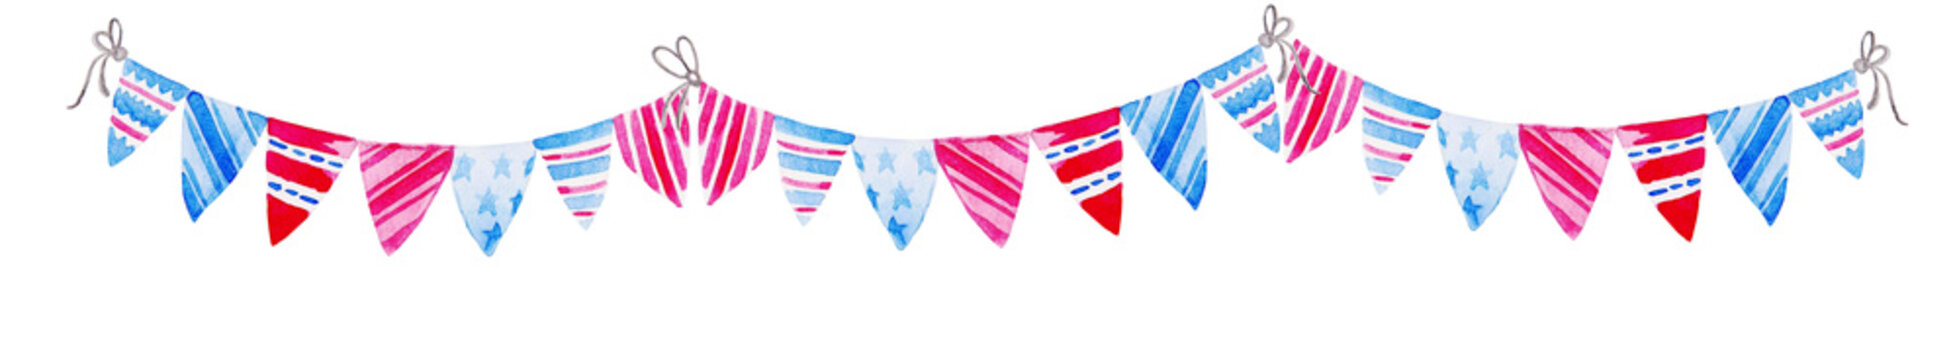 Illustration for 4th of July. Watercolor Bunting Flags. Celebration of American Independence Day